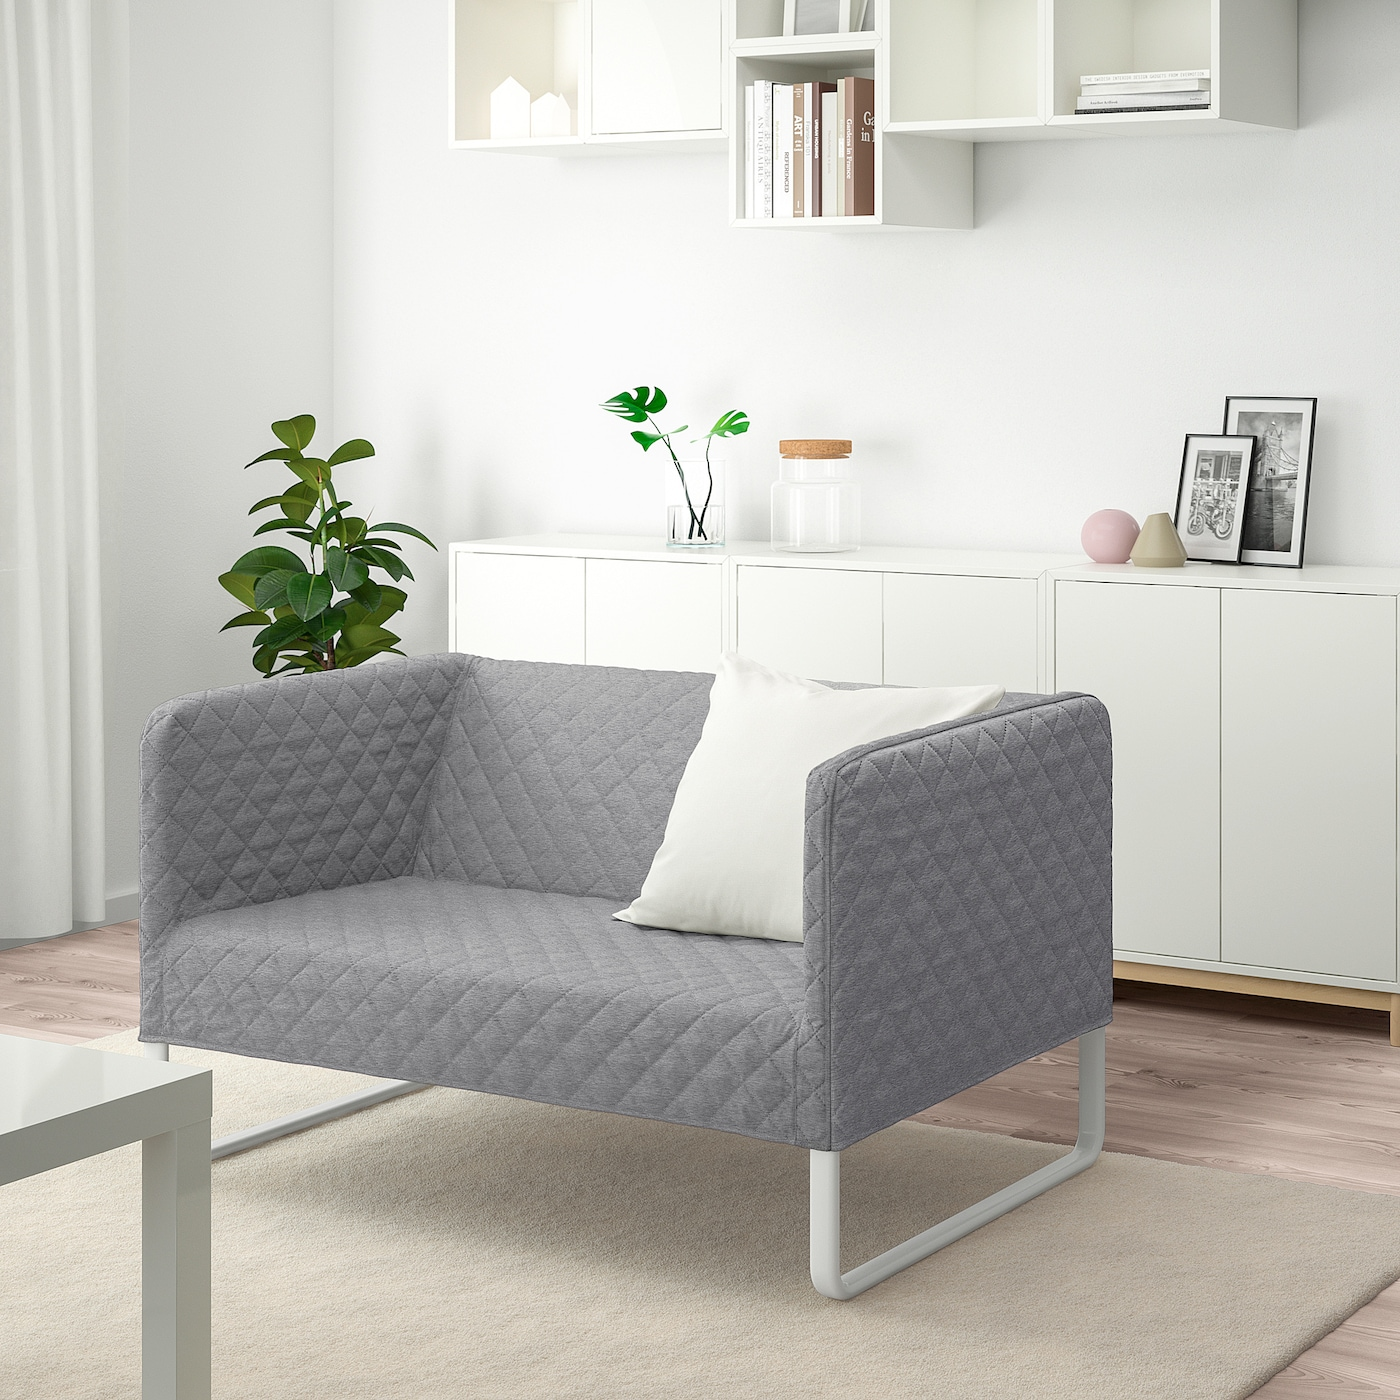 Bankhoes Ikea Bank.Knopparp 2 Seat Sofa Knisa Light Grey Ikea